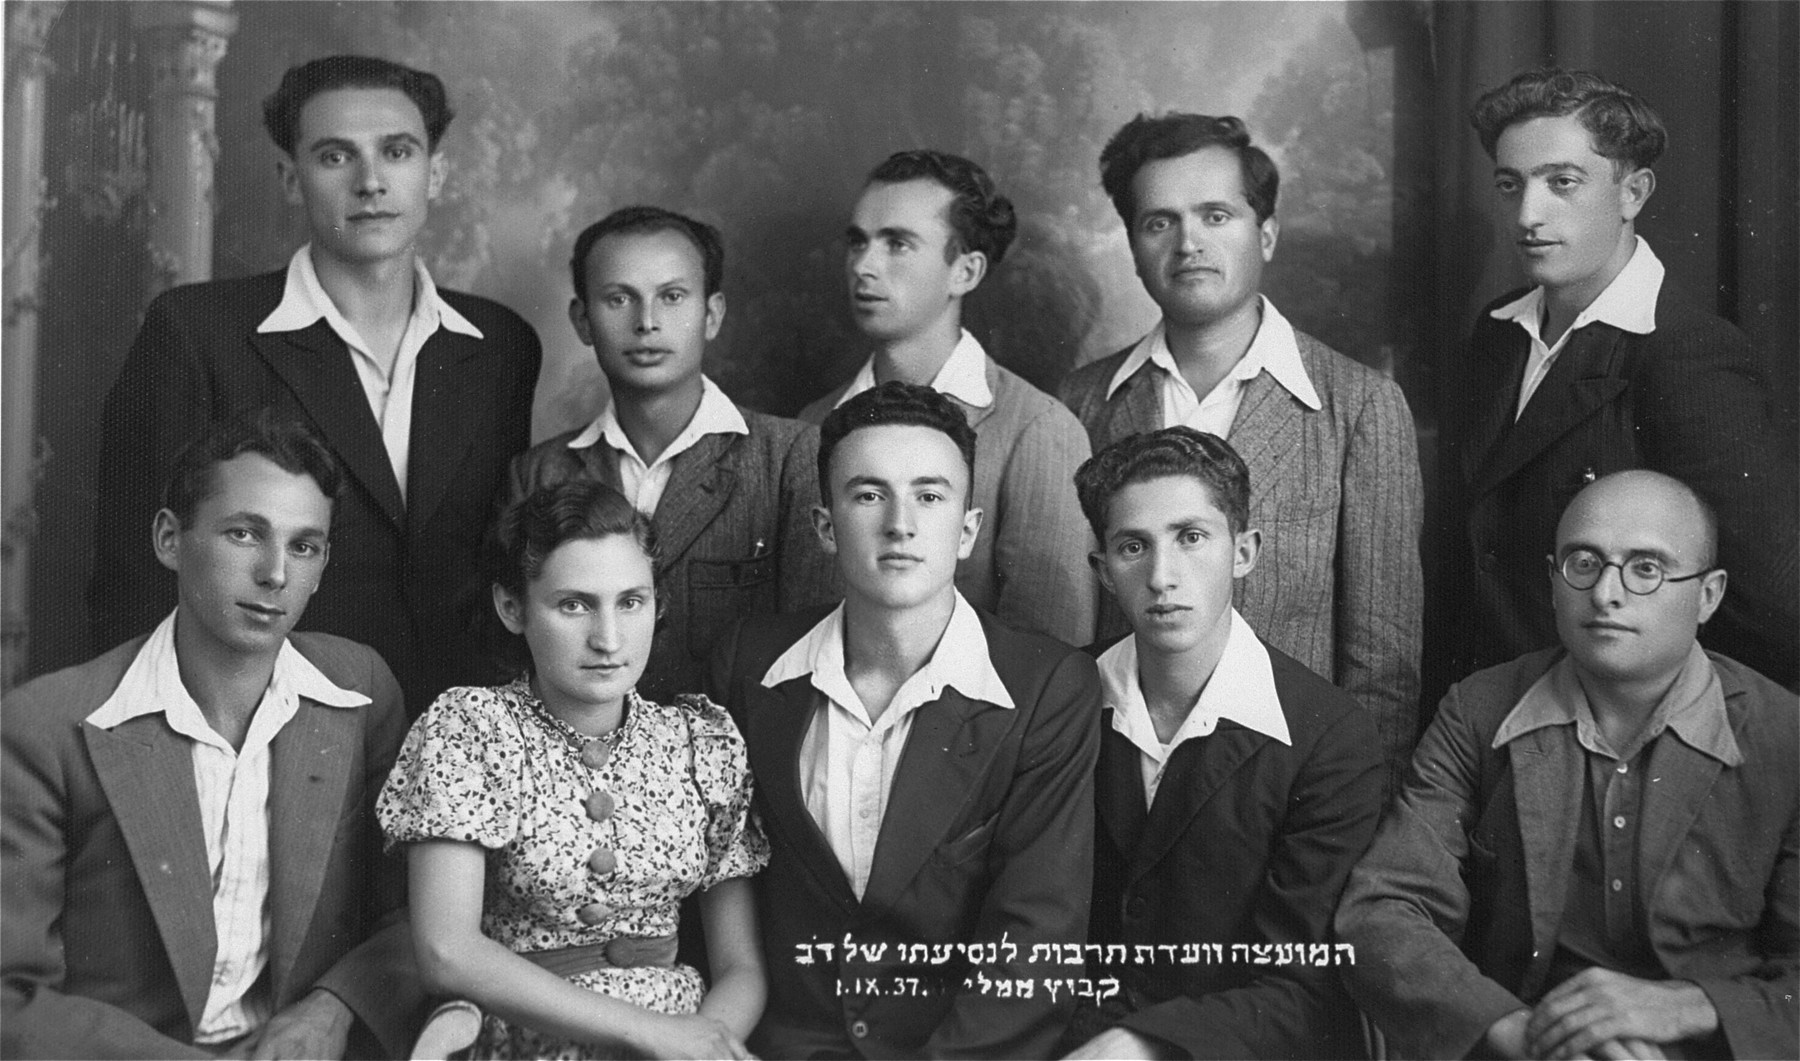 Group portrait of the cultural committee of the kibbutz hachshara, Bemaaleh, taken on the occasion of the departure of one of its members.  Pictured standing at the far right is Eliezer Kaplan, the donor's father.